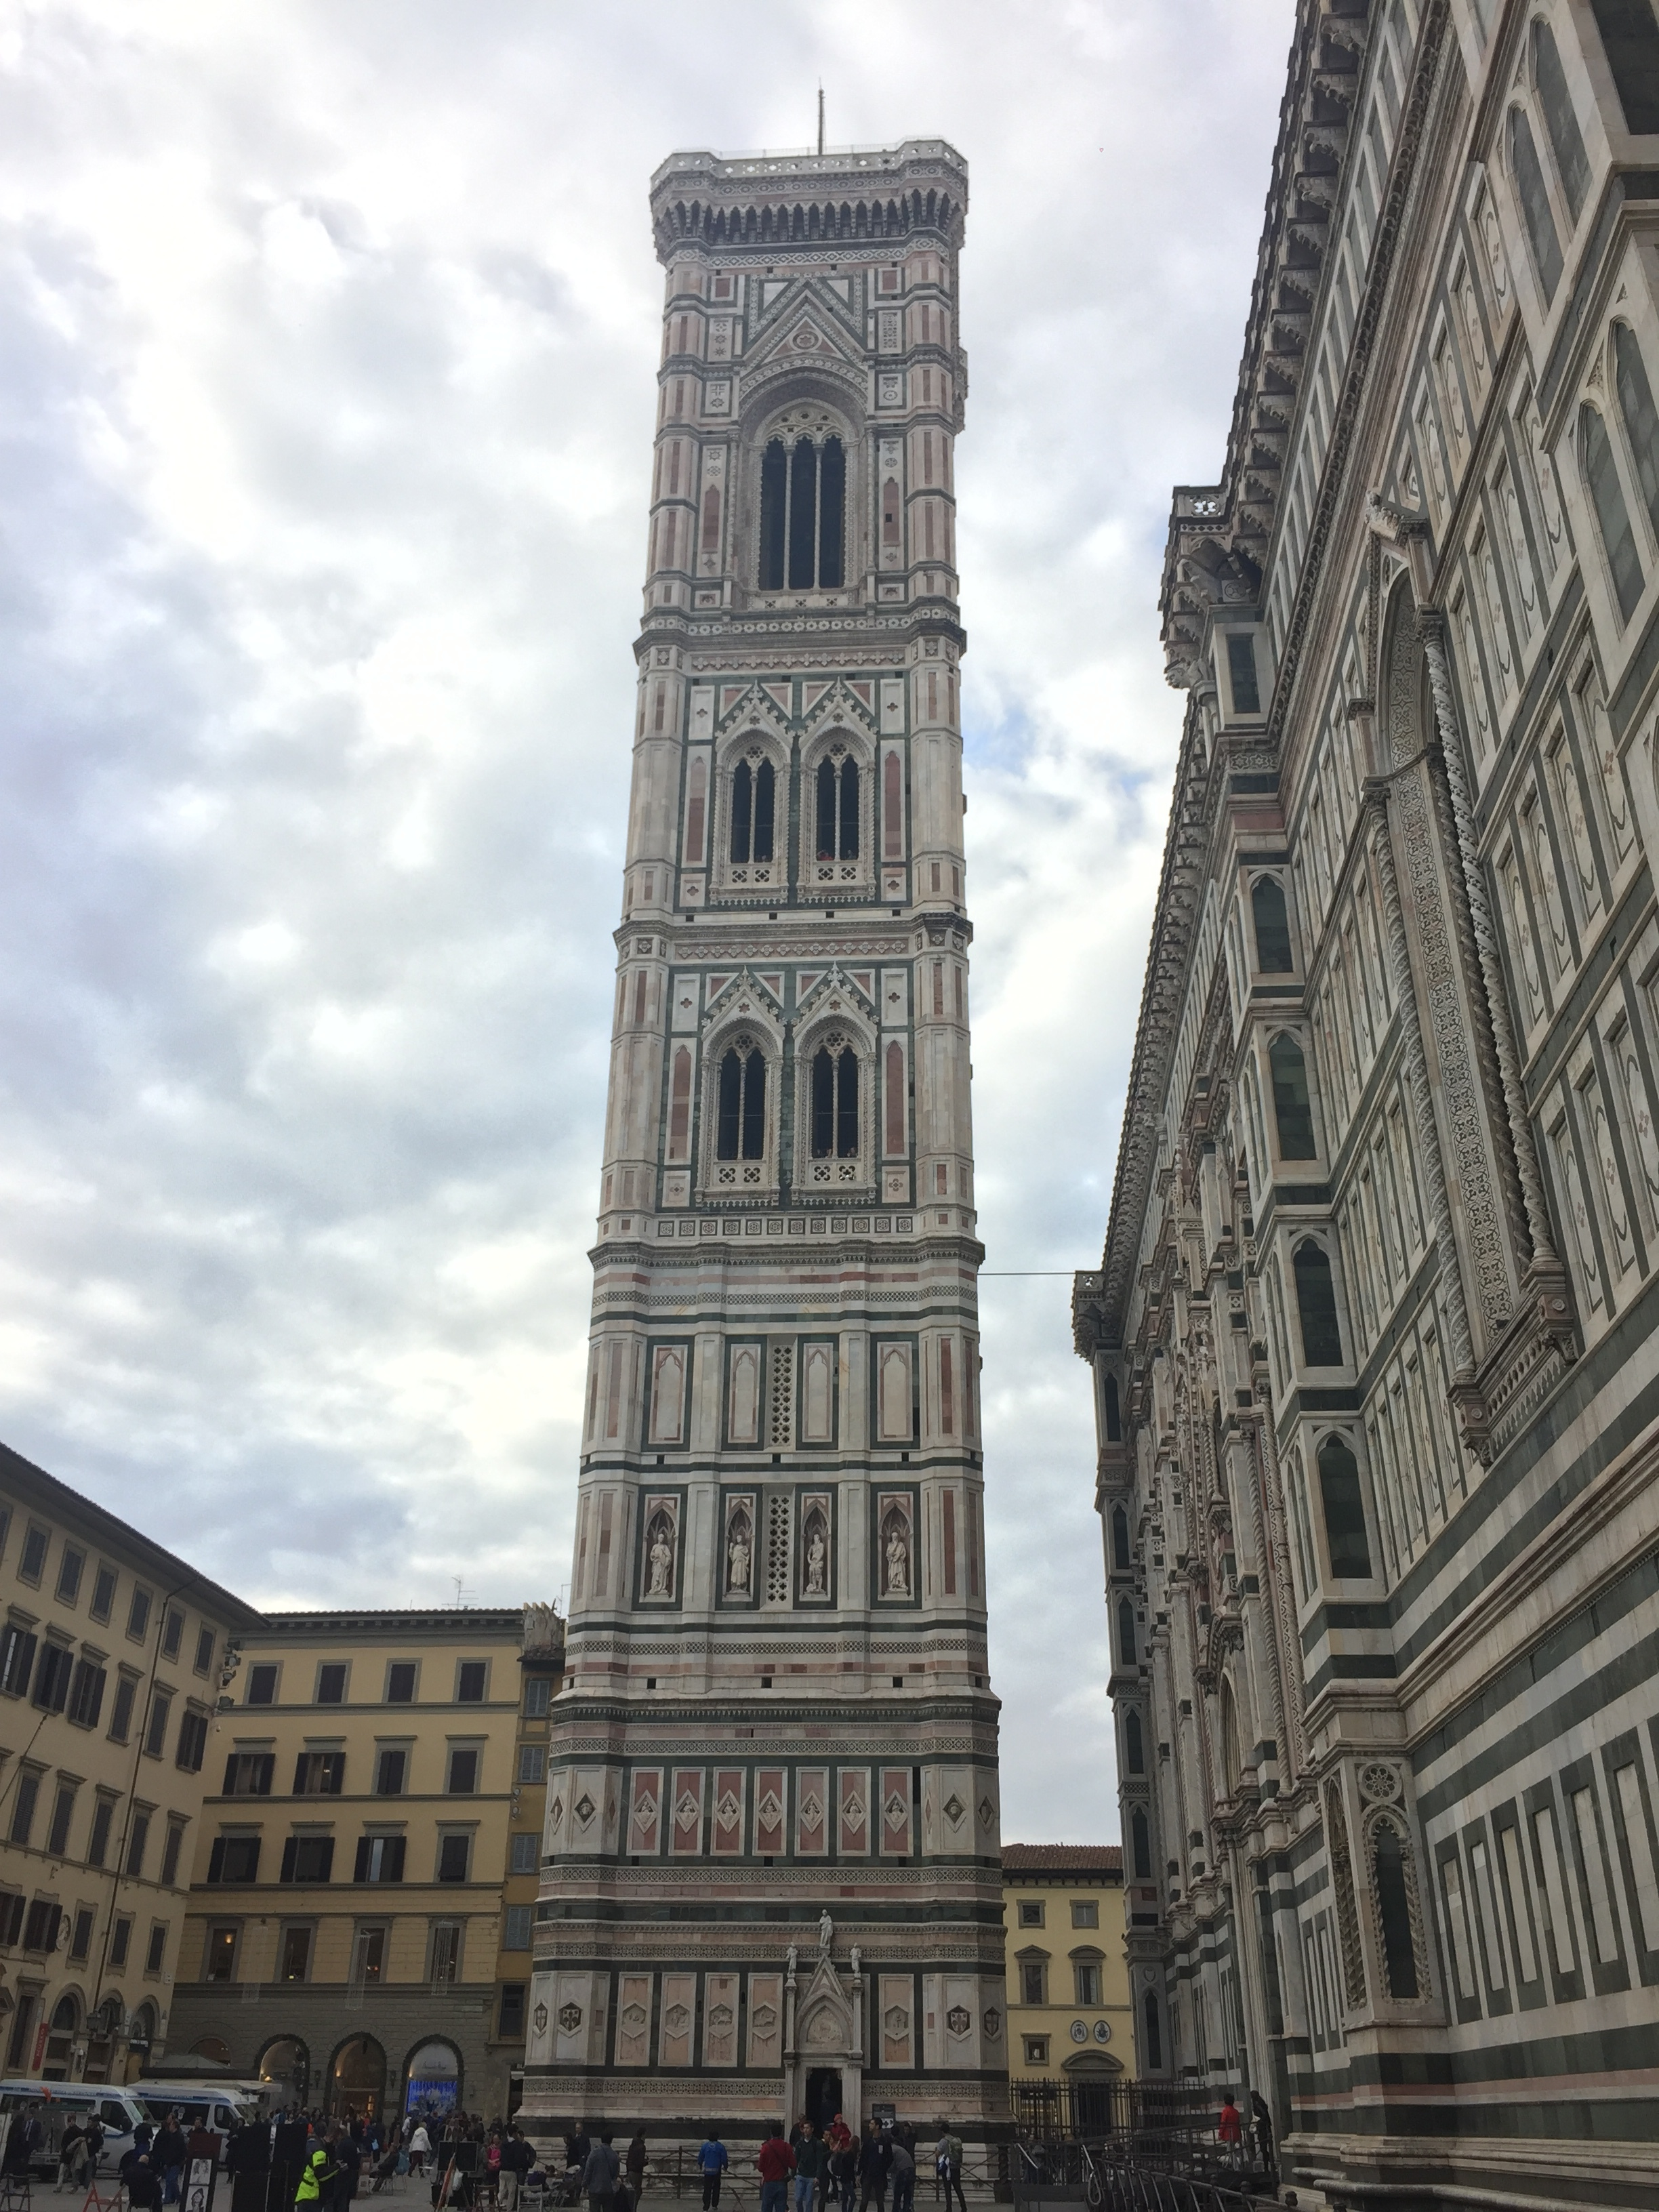 Pisa had more than just leaning towers. This one stood up on its own.